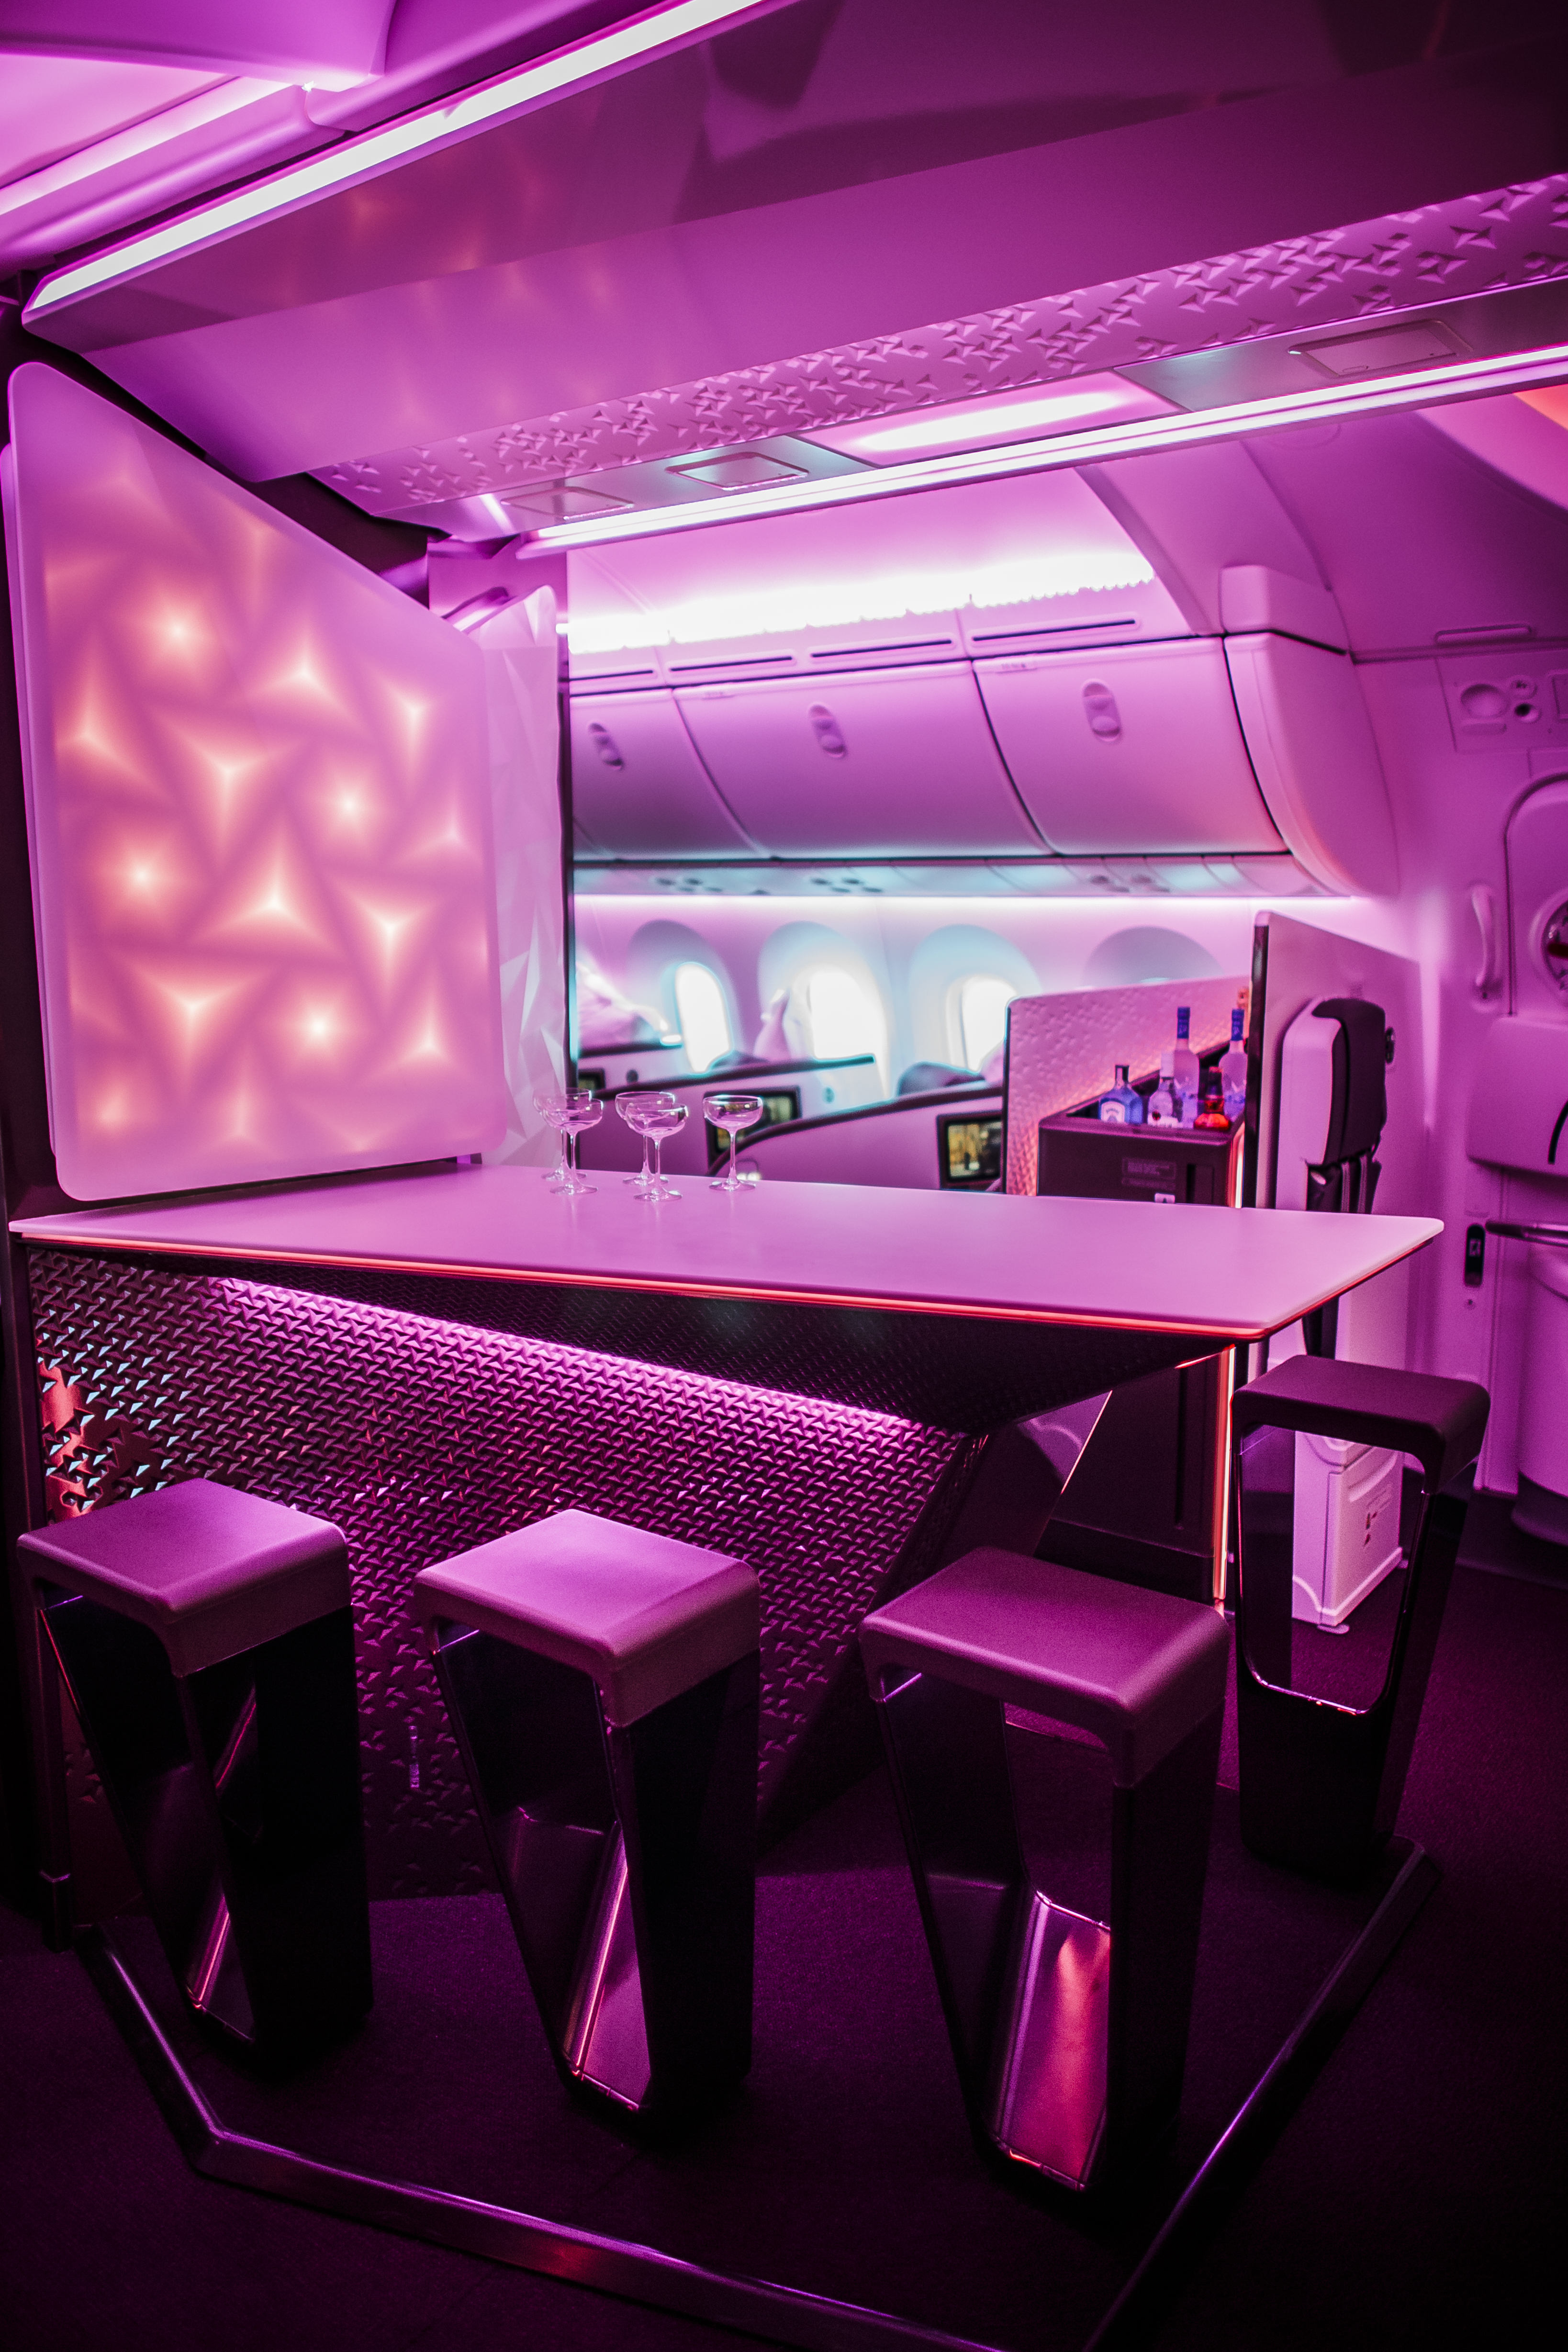 Virgin Atlantic replaces on-board bar with comfortable